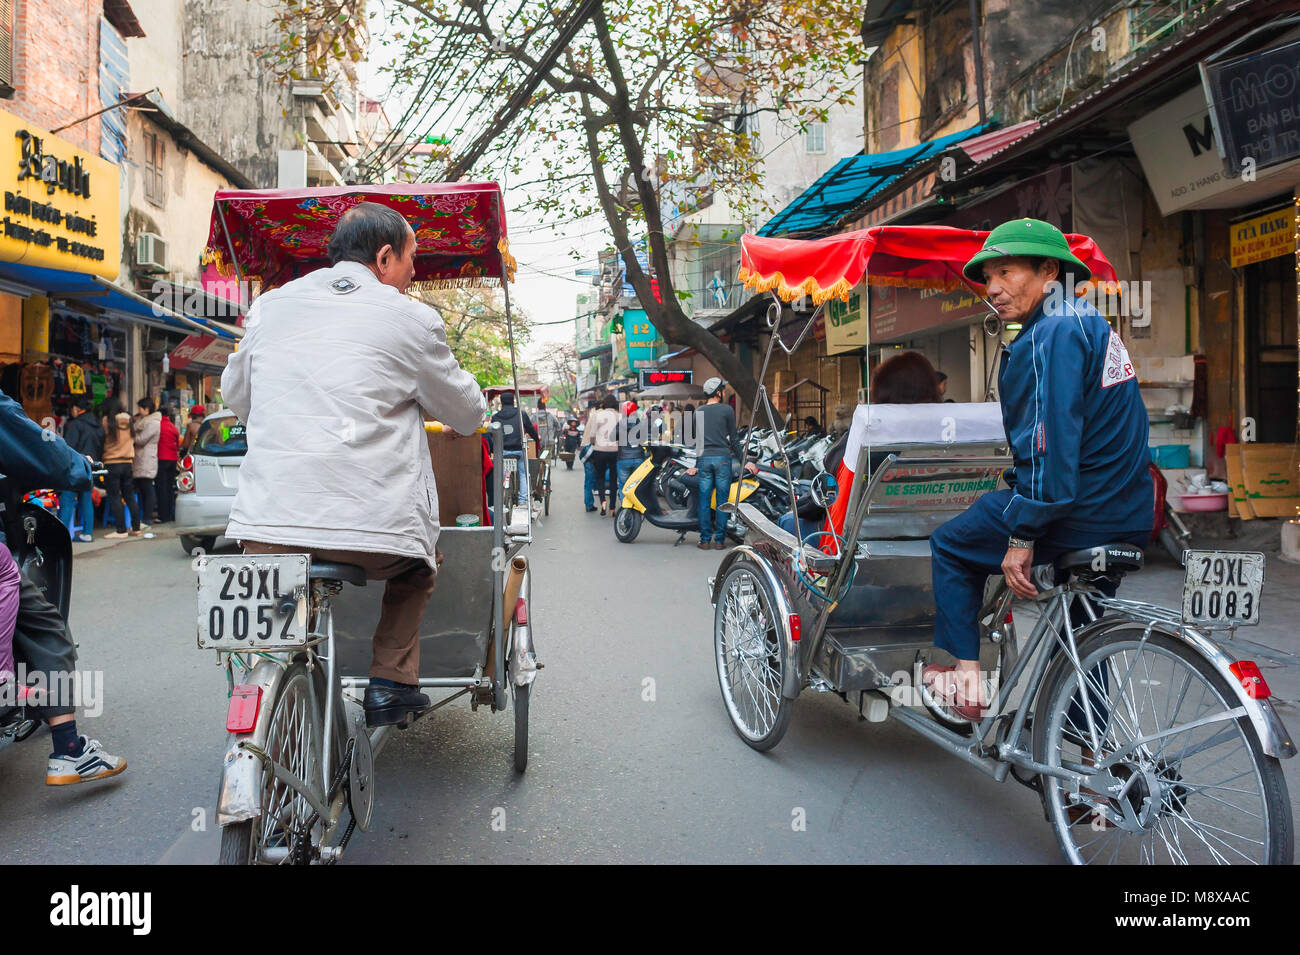 Vietnam rickshaw, two rickshaw drivers chat while taking their passengers on a tour of the Old Quarter in the center Stock Photo